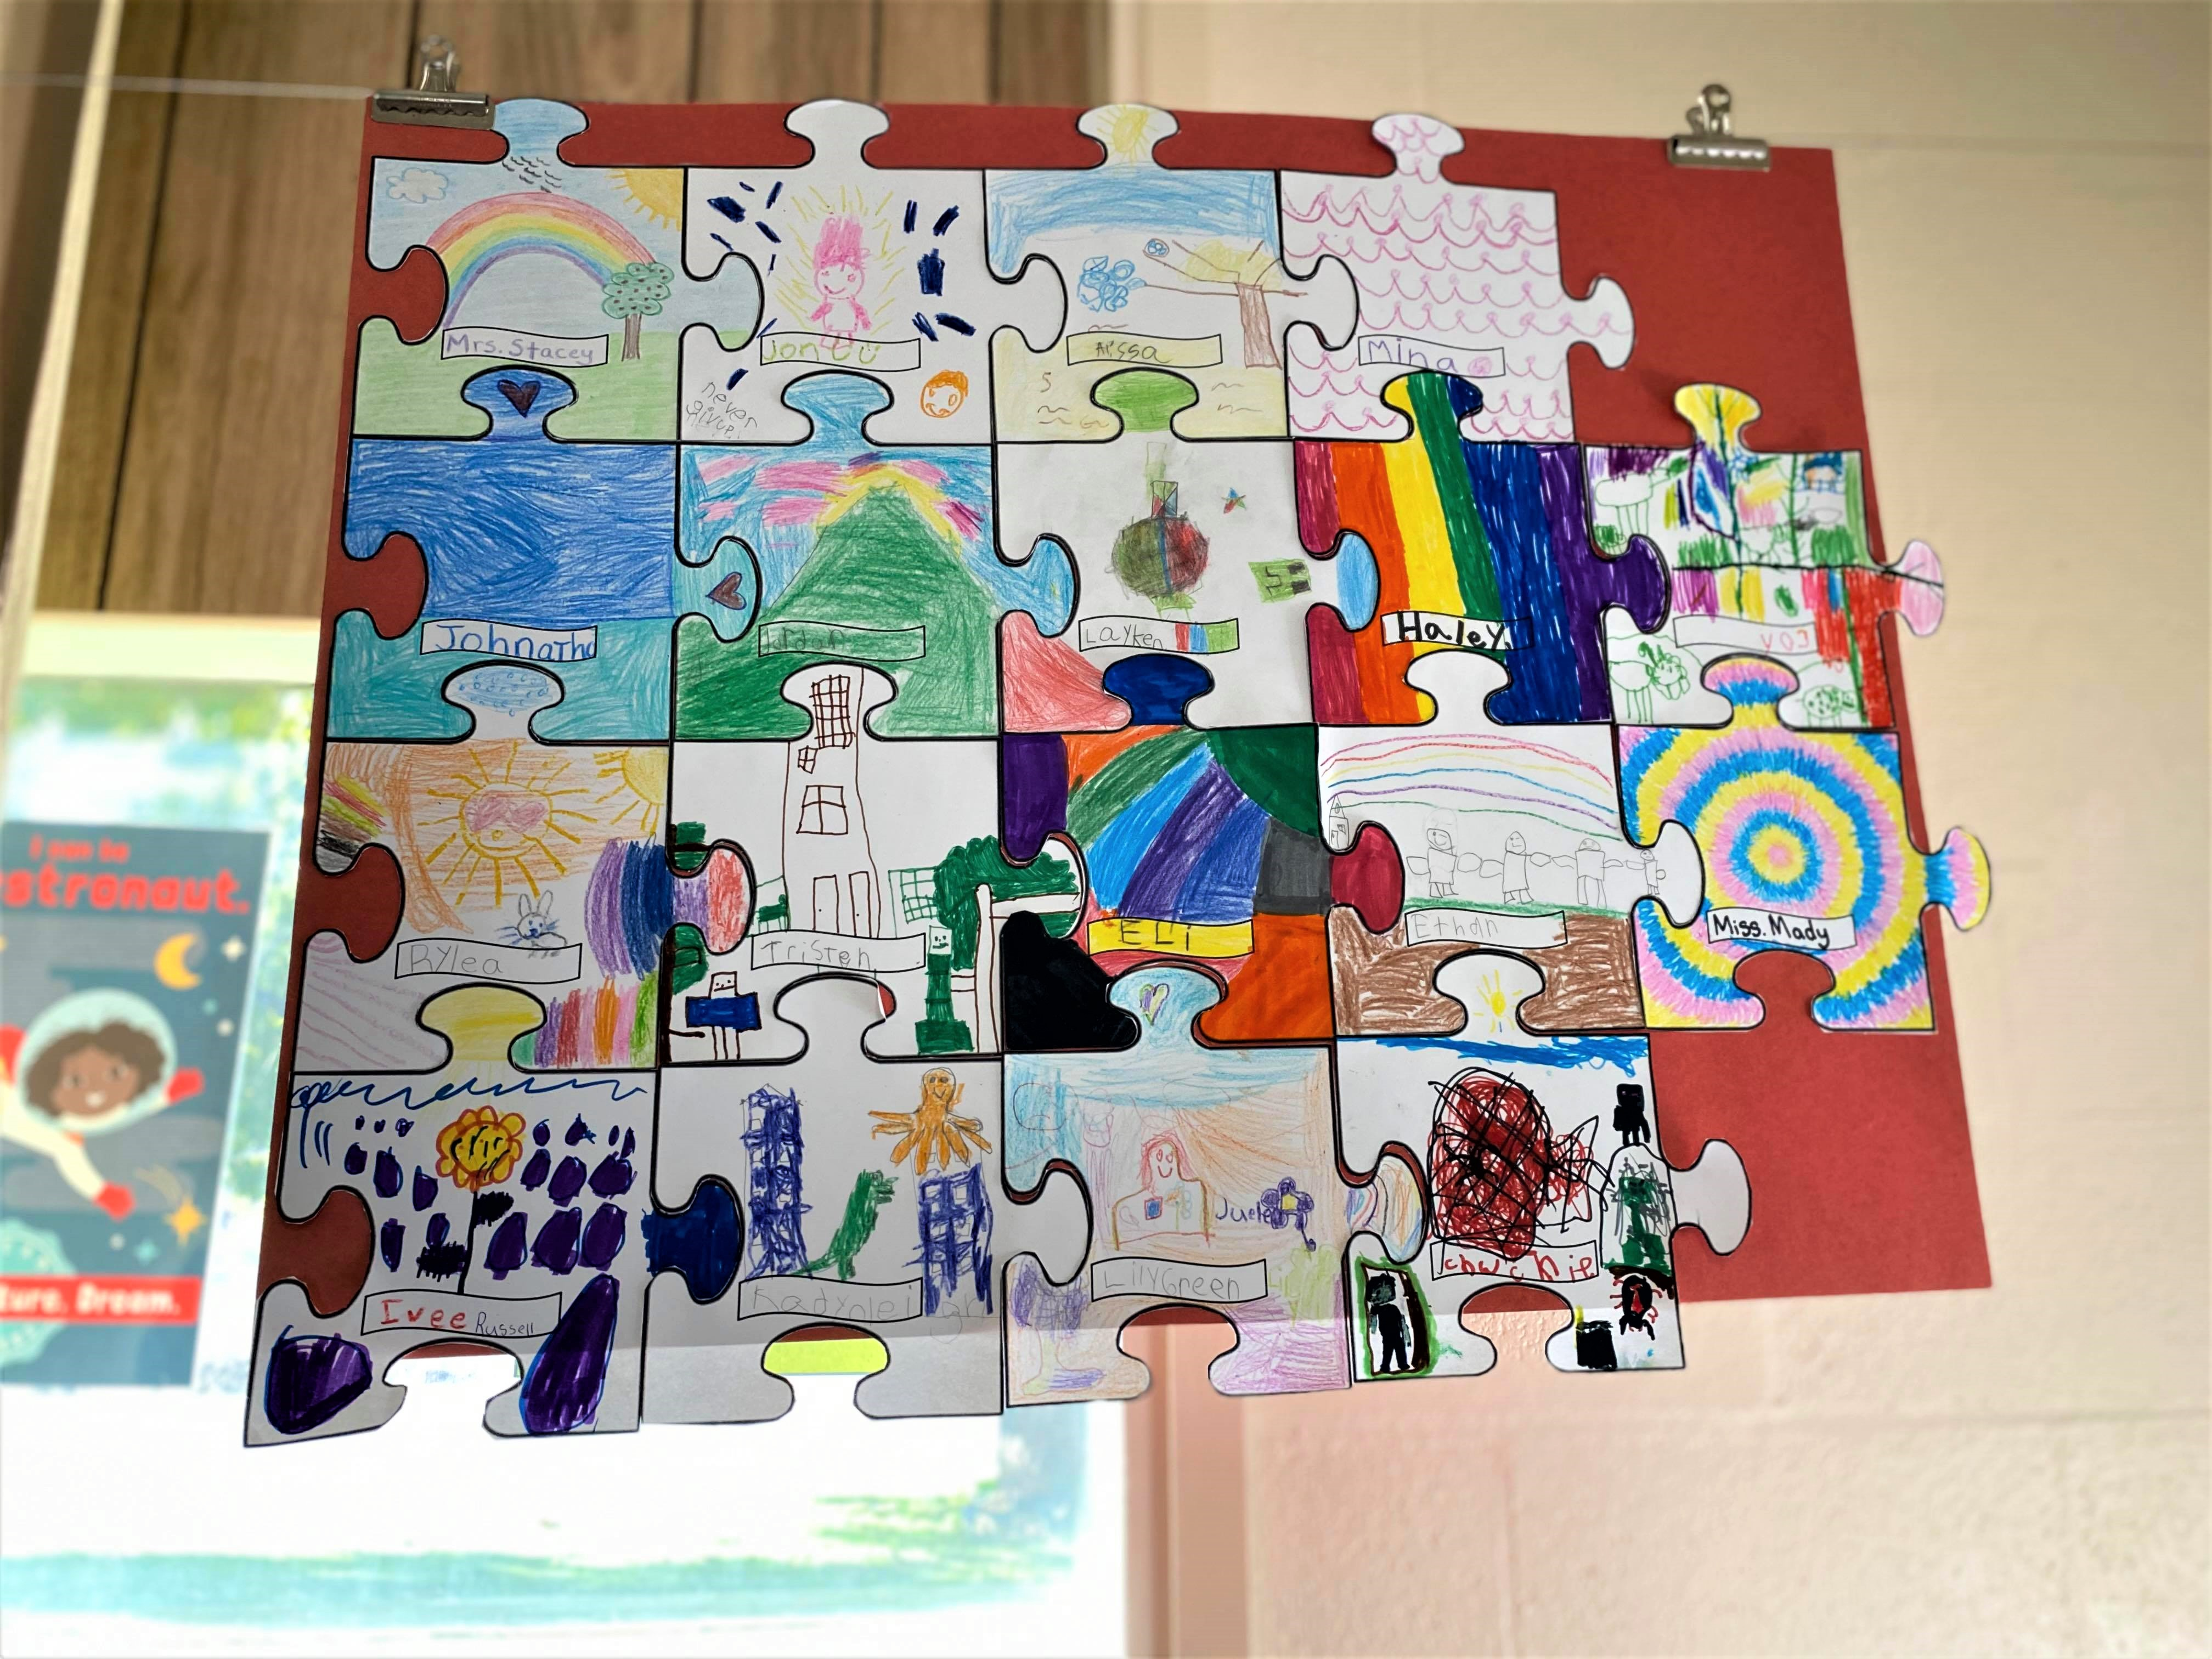 Class artwork from Ms. Stacey's class.